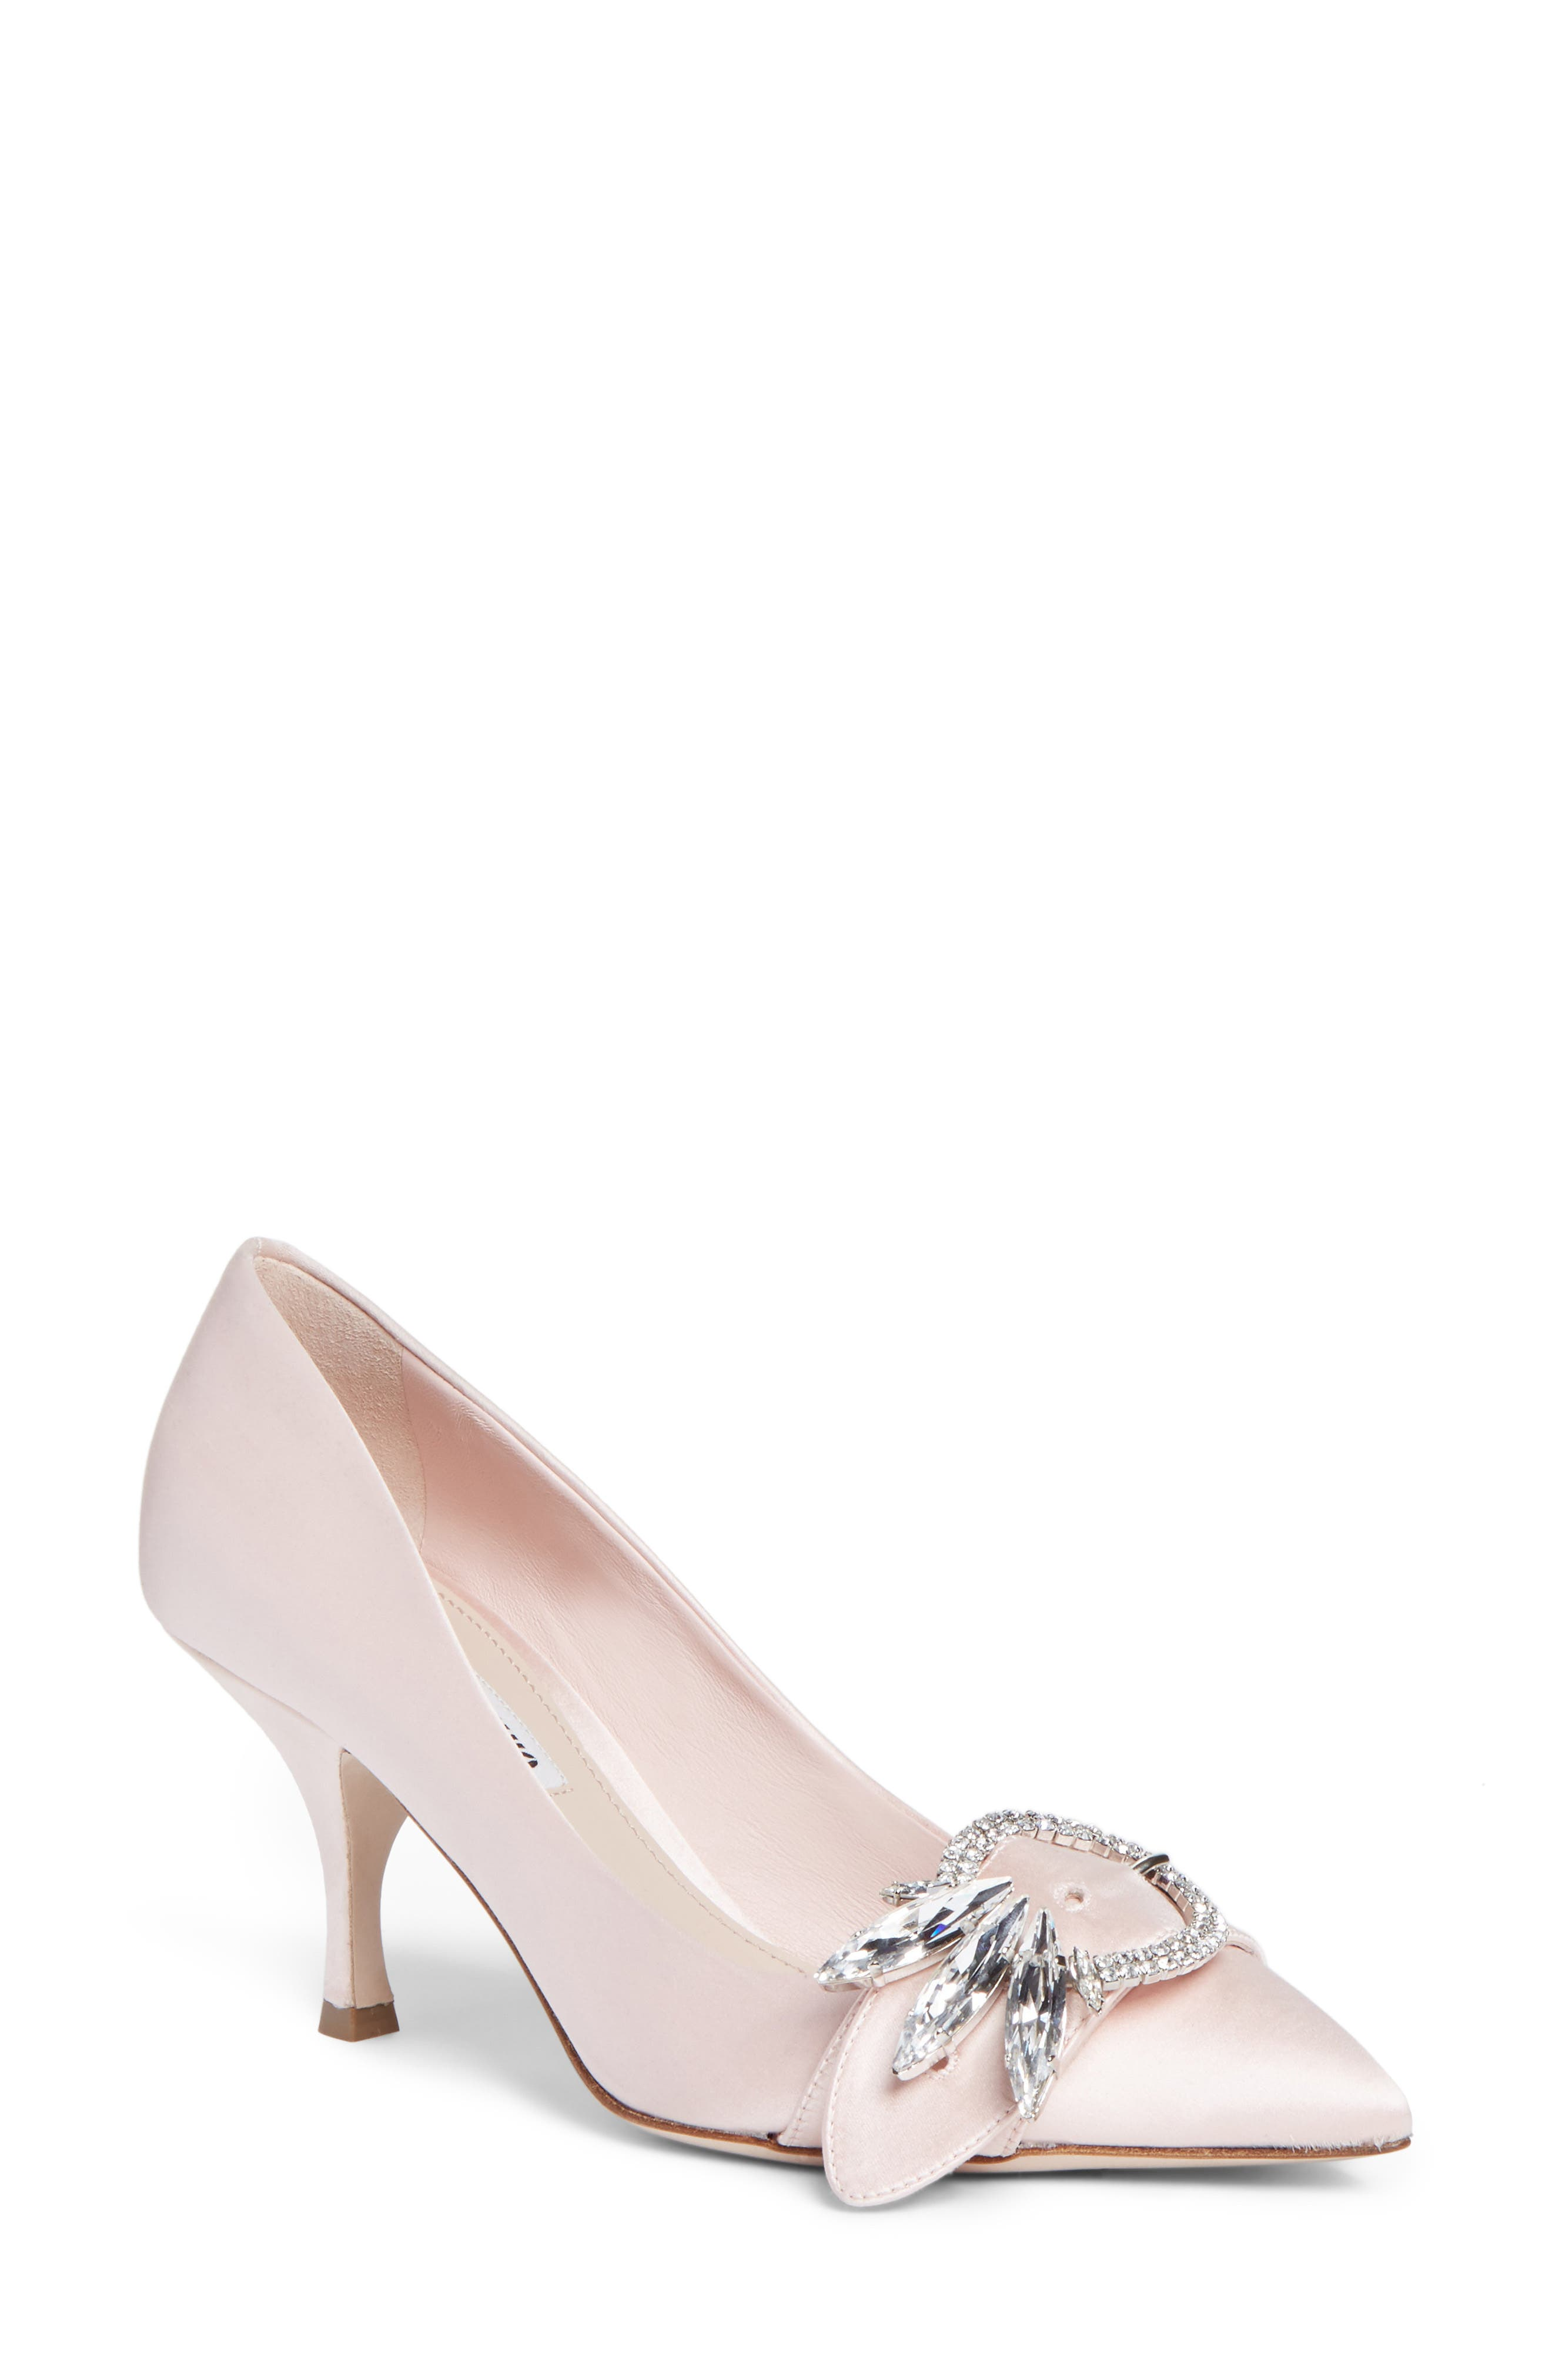 Crystal Buckle Pump,                             Main thumbnail 1, color,                             Pink Satin